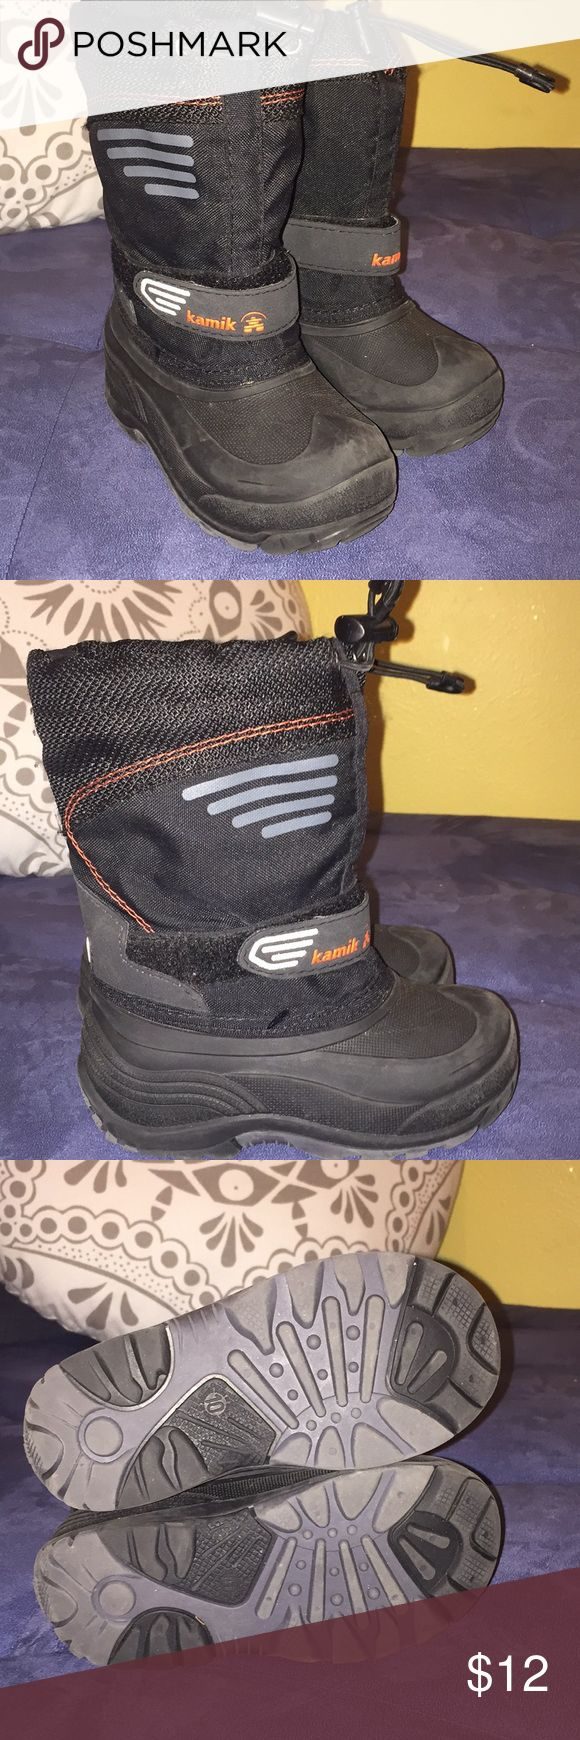 Kamik boys snow boot 10 Still in great condition Kamik Shoes Rain & Snow Boots